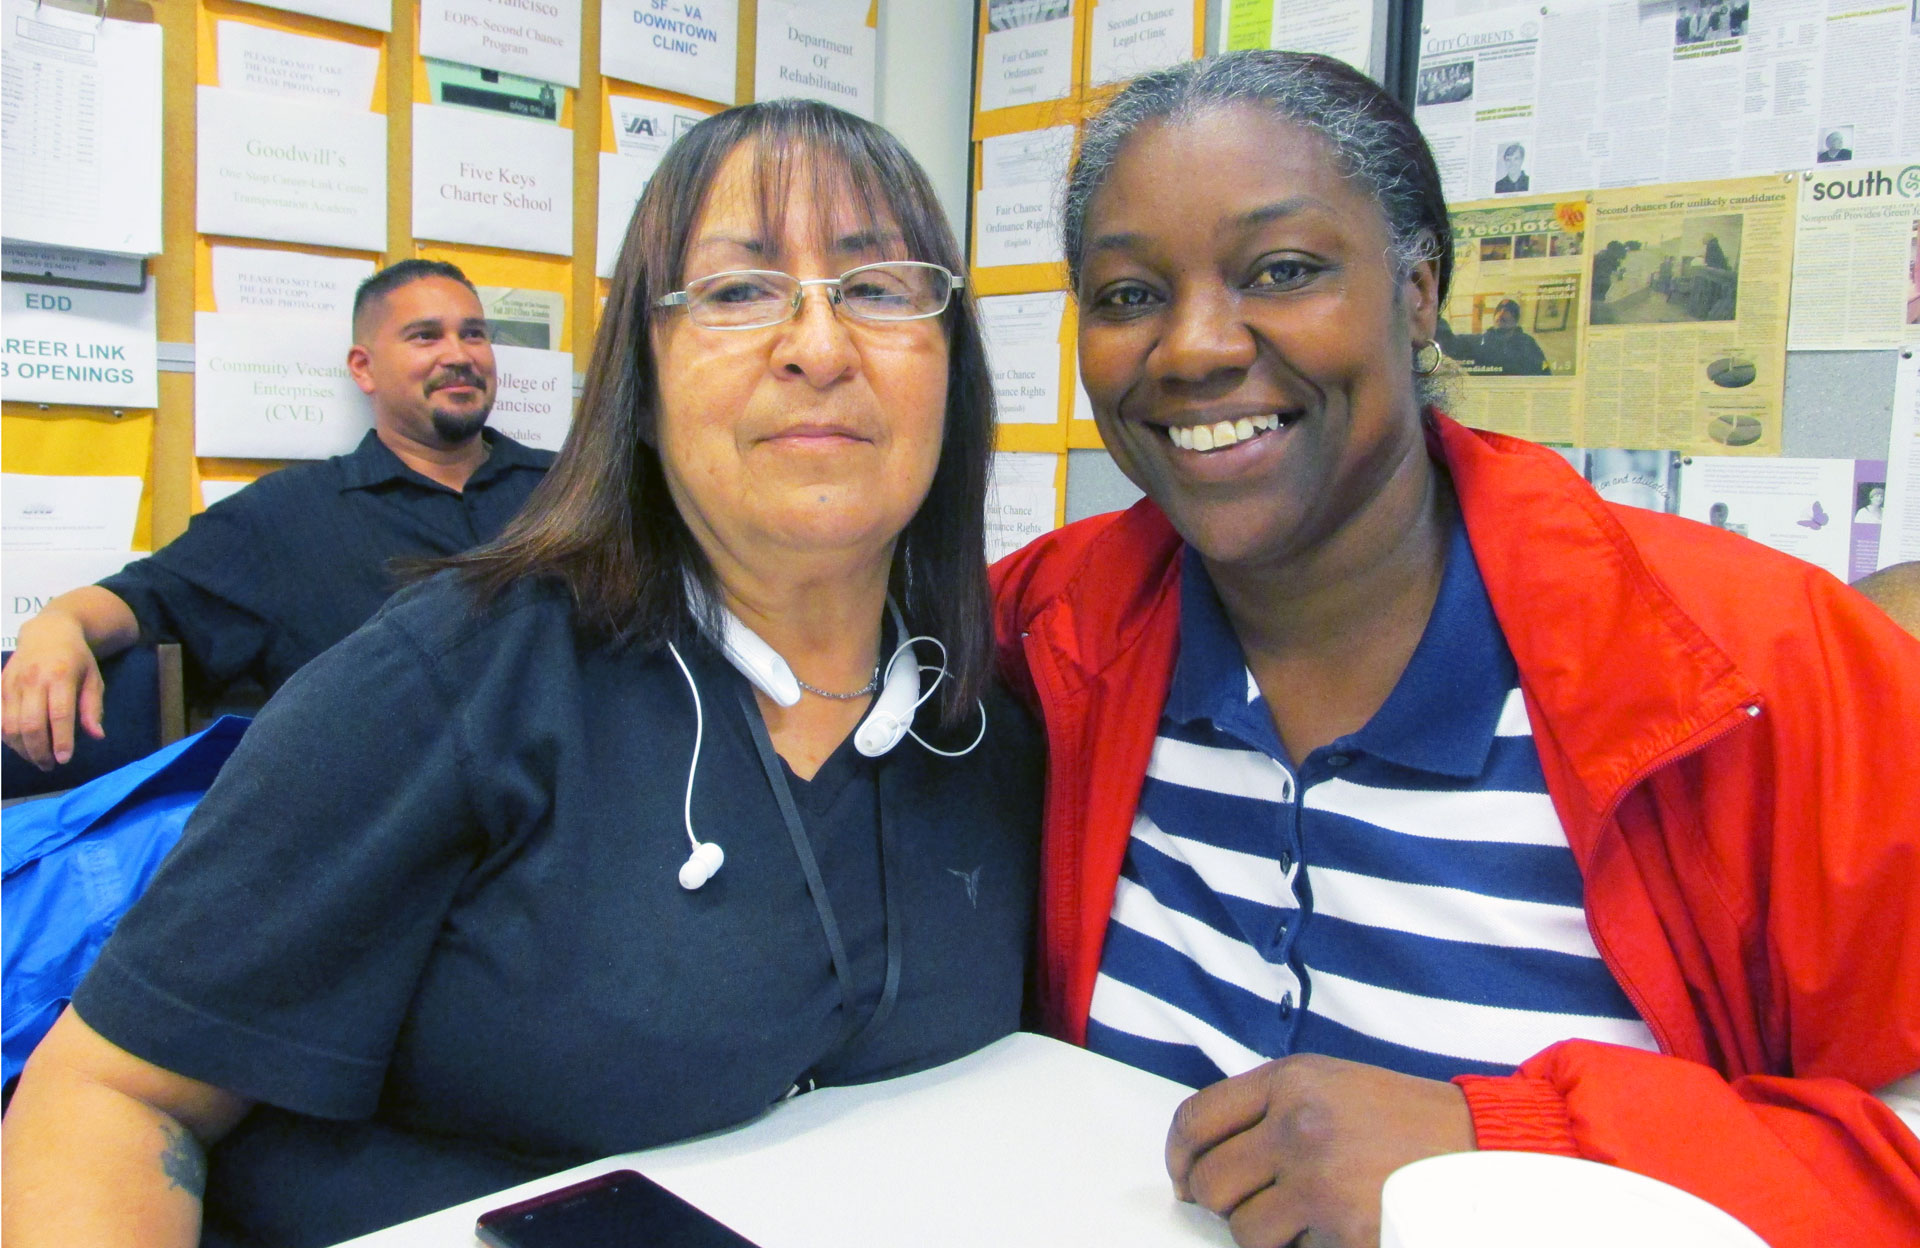 Paroled lifers Linda Candelaria (L) and Alisha Nolan Taplett are coming to terms with life on the outside after spending decades in prison for murder.